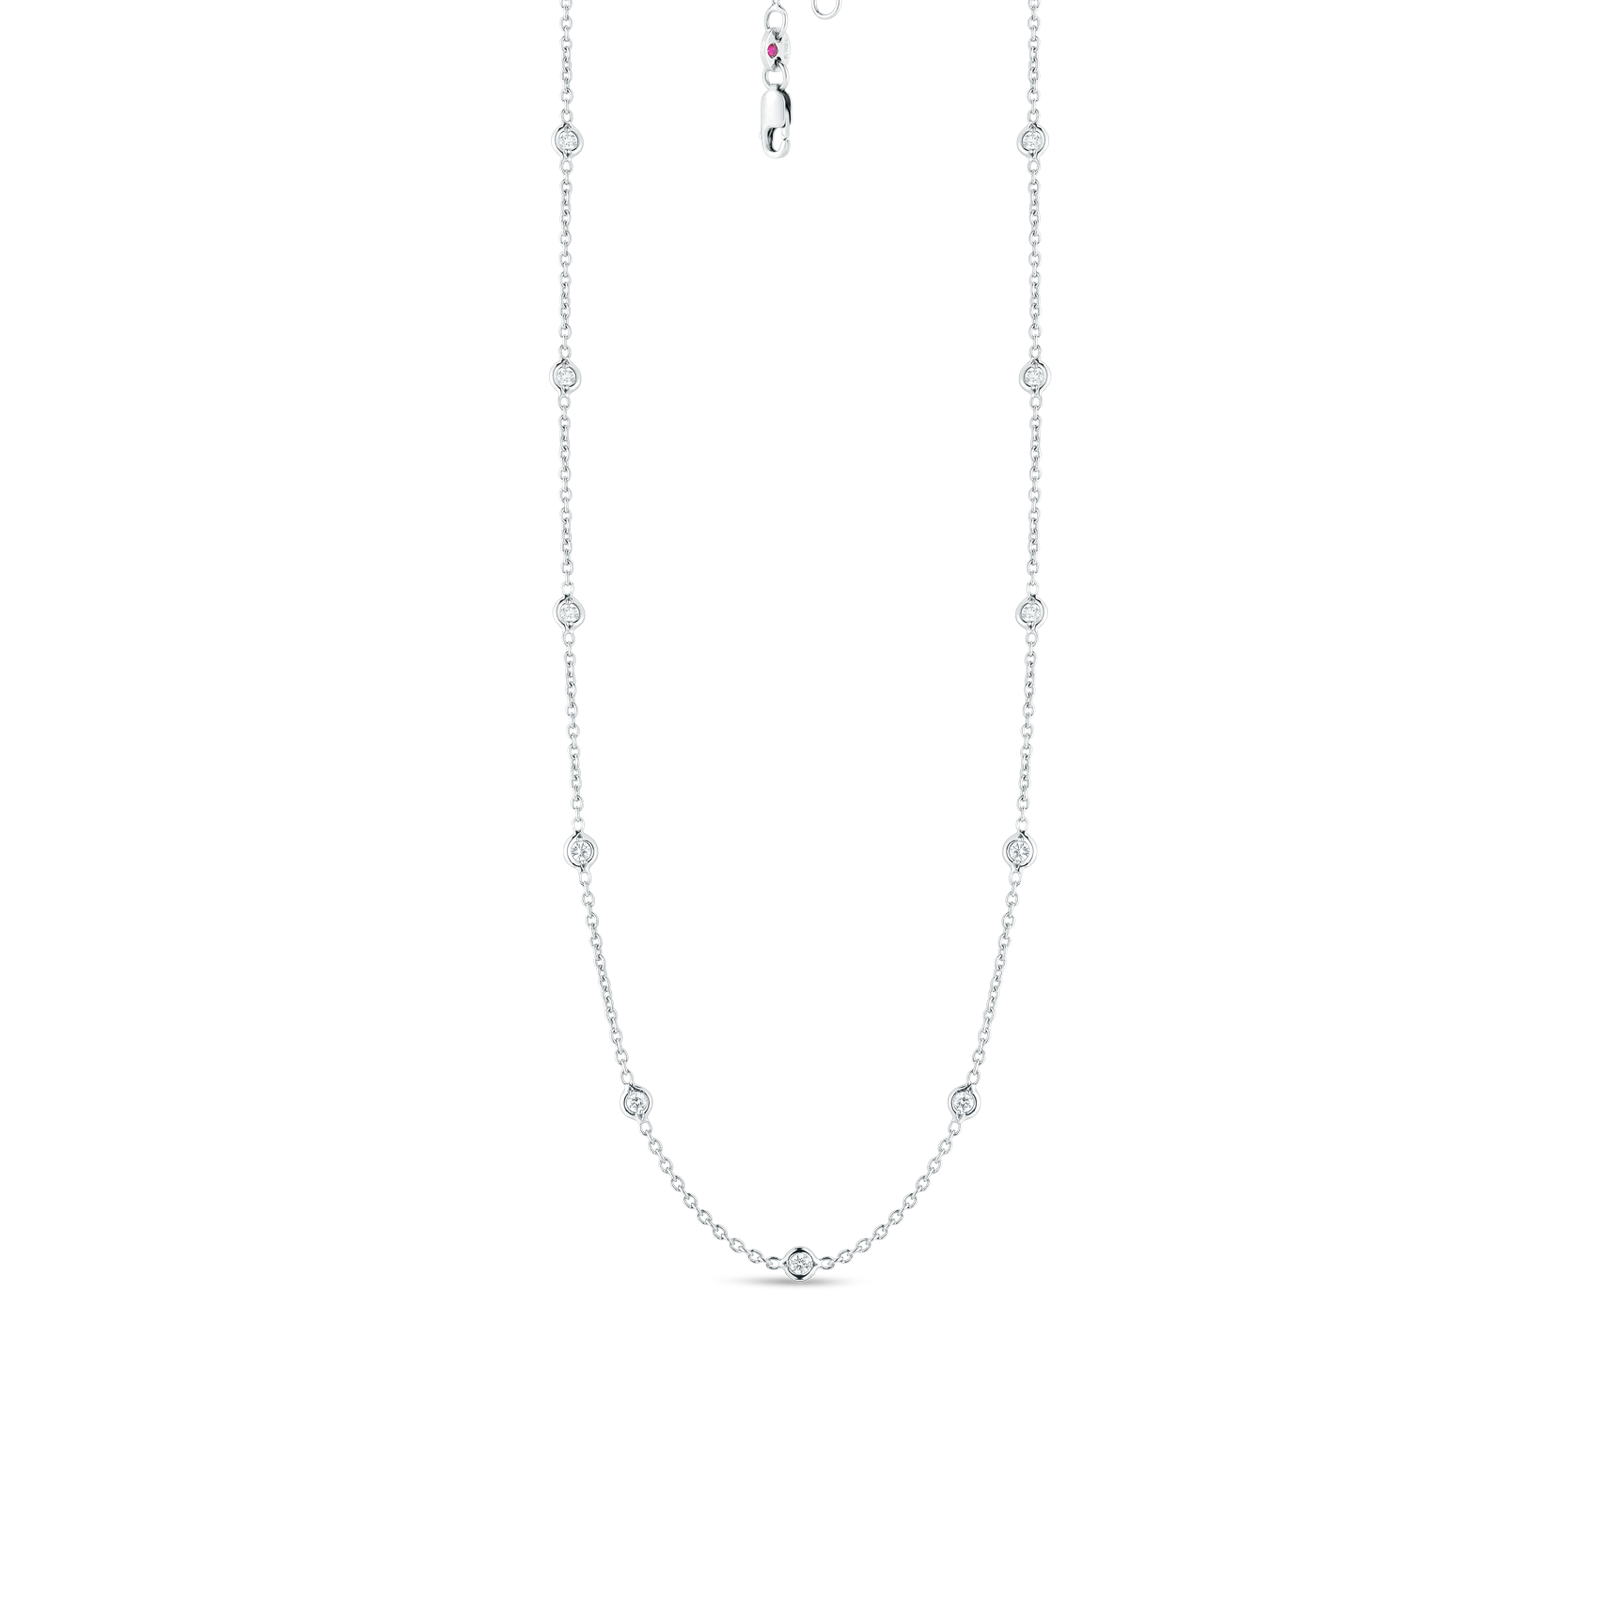 18KT GOLD 15 STATION DIAMOND NECKLACE